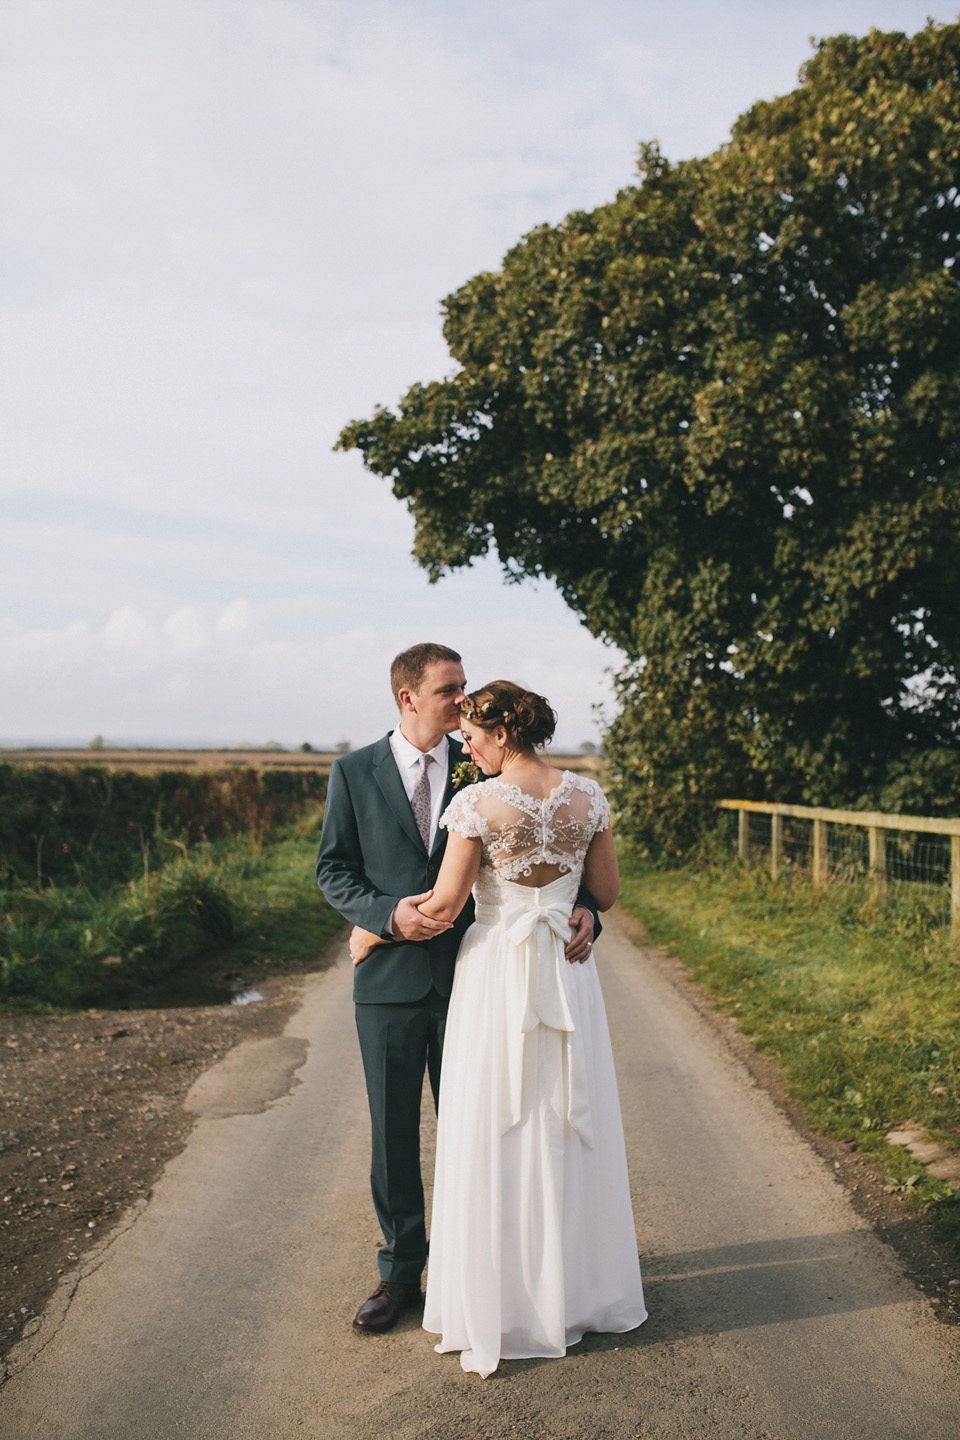 Flowers in Her Hair and a Rustic Autumn Yorkshire wedding